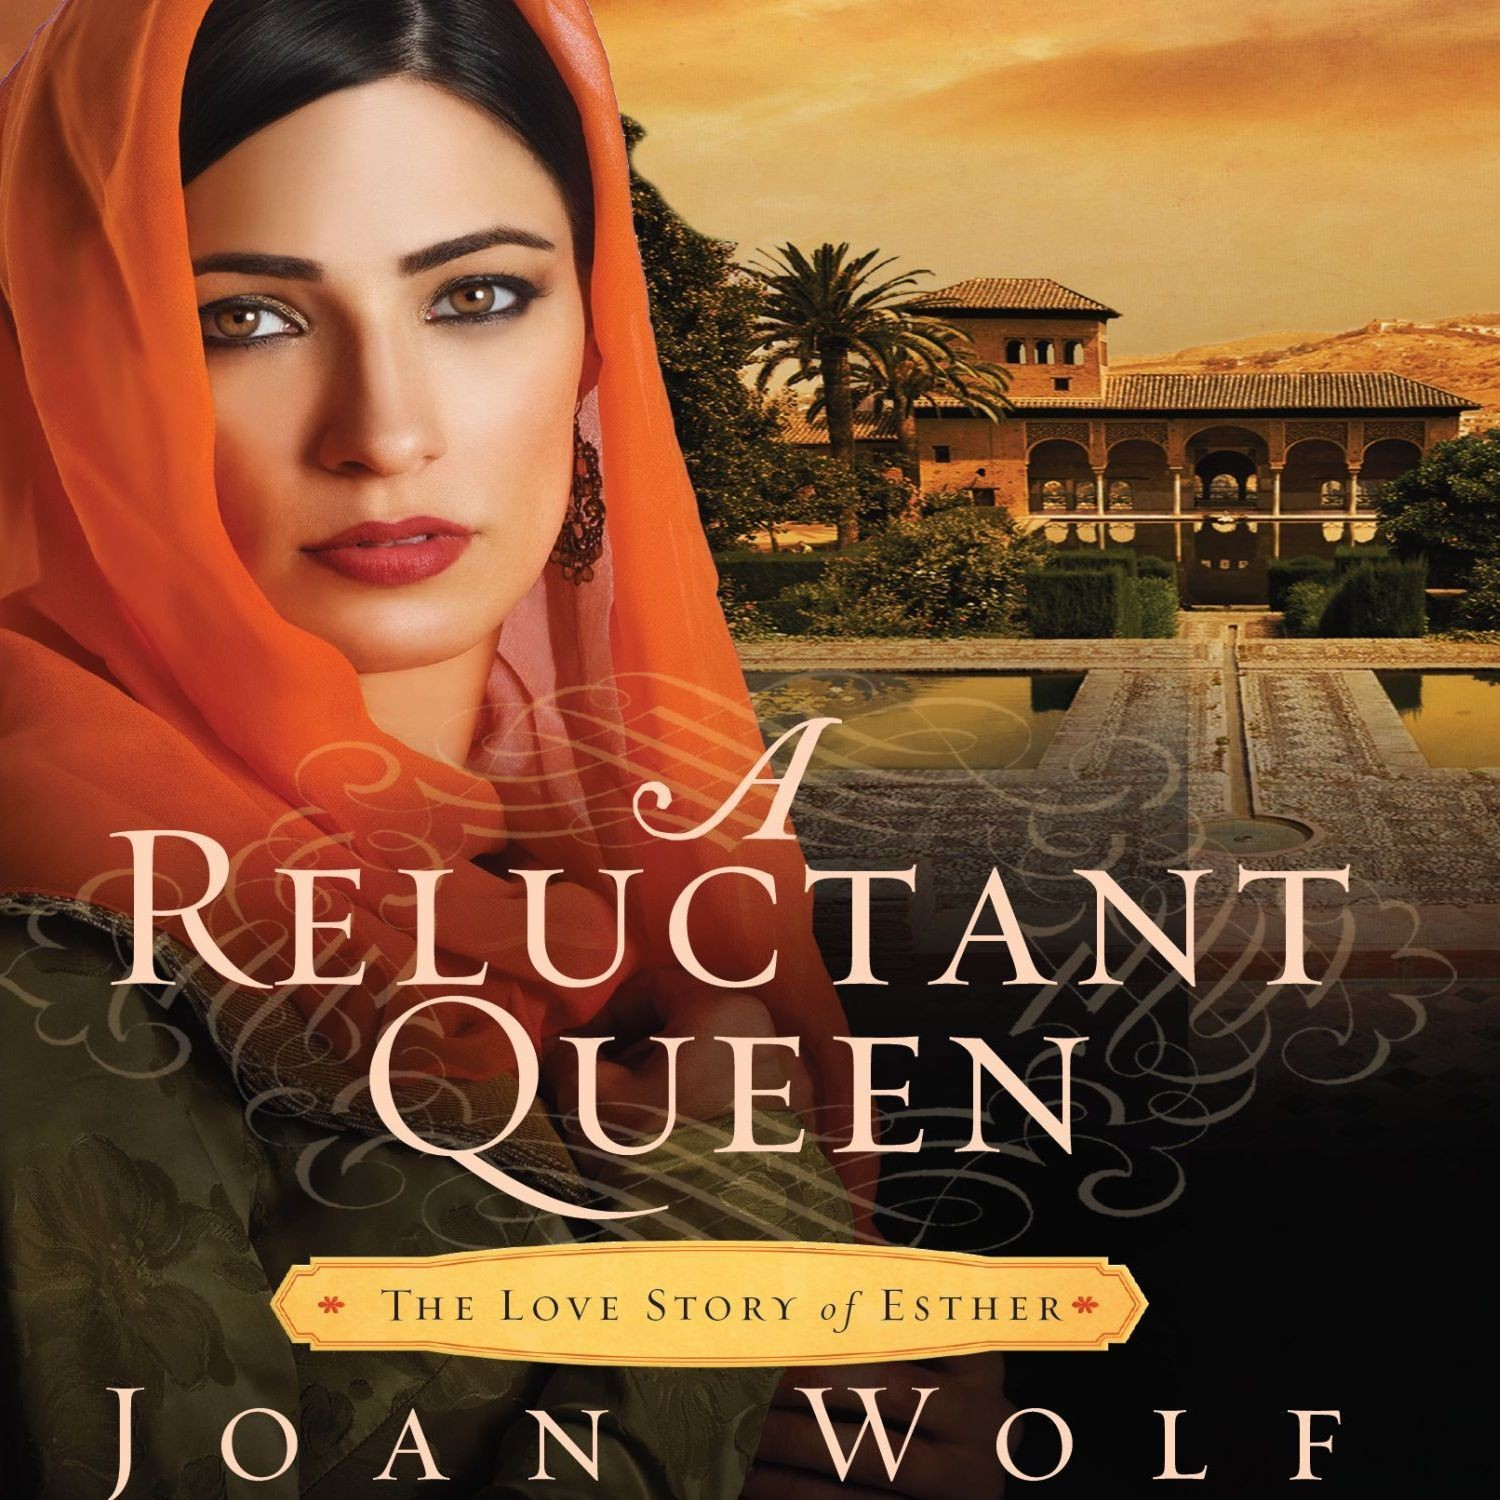 Printable A Reluctant Queen: The Love Story of Esther Audiobook Cover Art